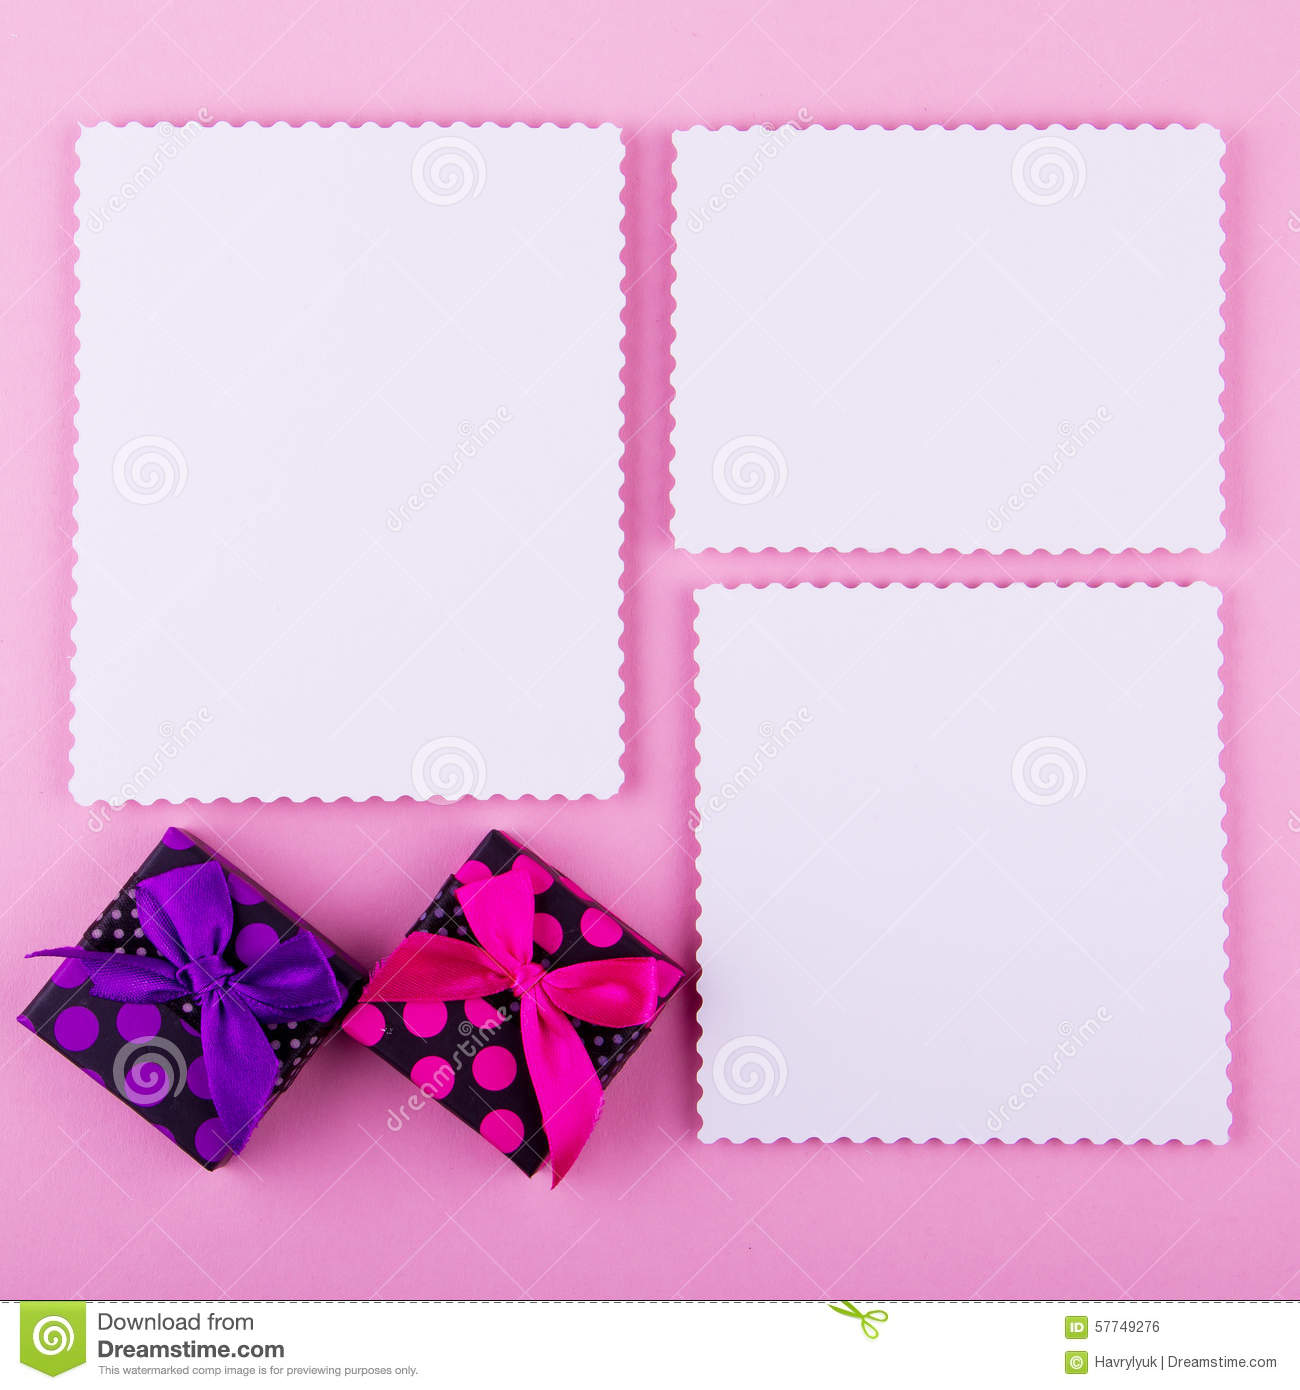 Three cards and gift boxes on pink background stock photo image of three cards and gift boxes on pink background good for blogs web facebook instagram on pink background love post card or greeting card m4hsunfo